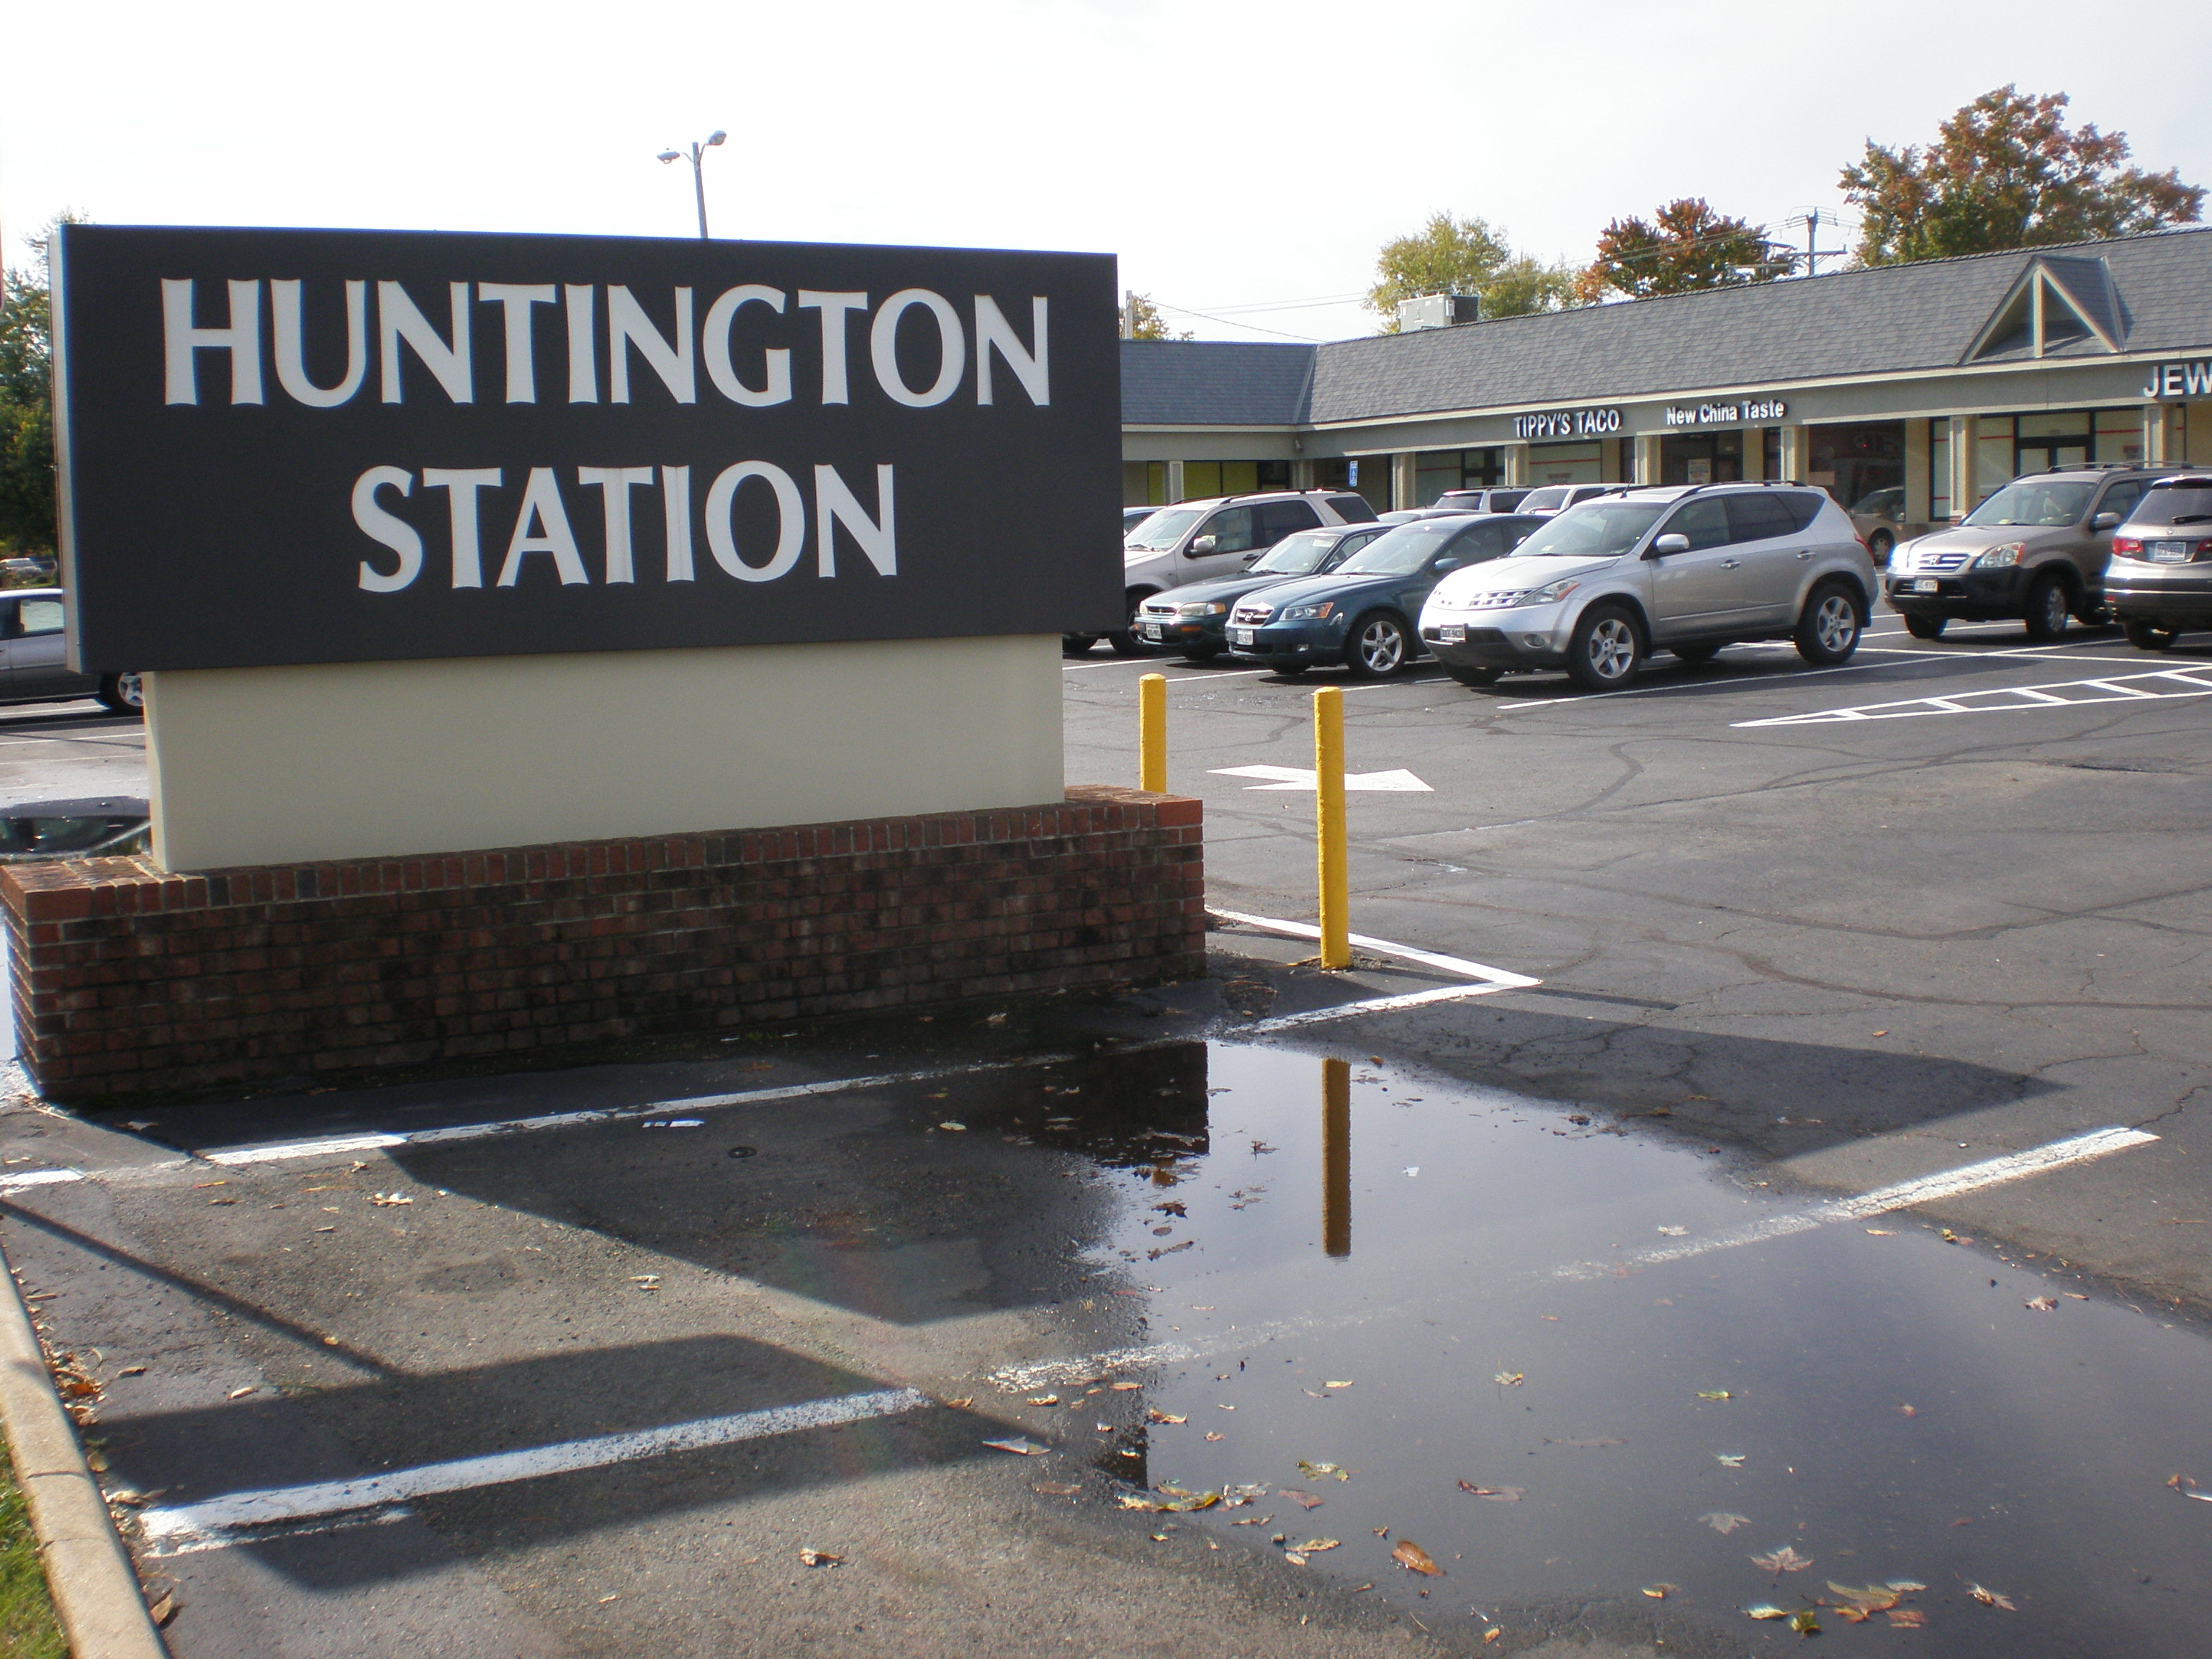 huntington station buddhist single men Review and pay your bill, sign-up to pay your bill automatically, and see the latest upgrade offers and deals sign-in to my verizon today.